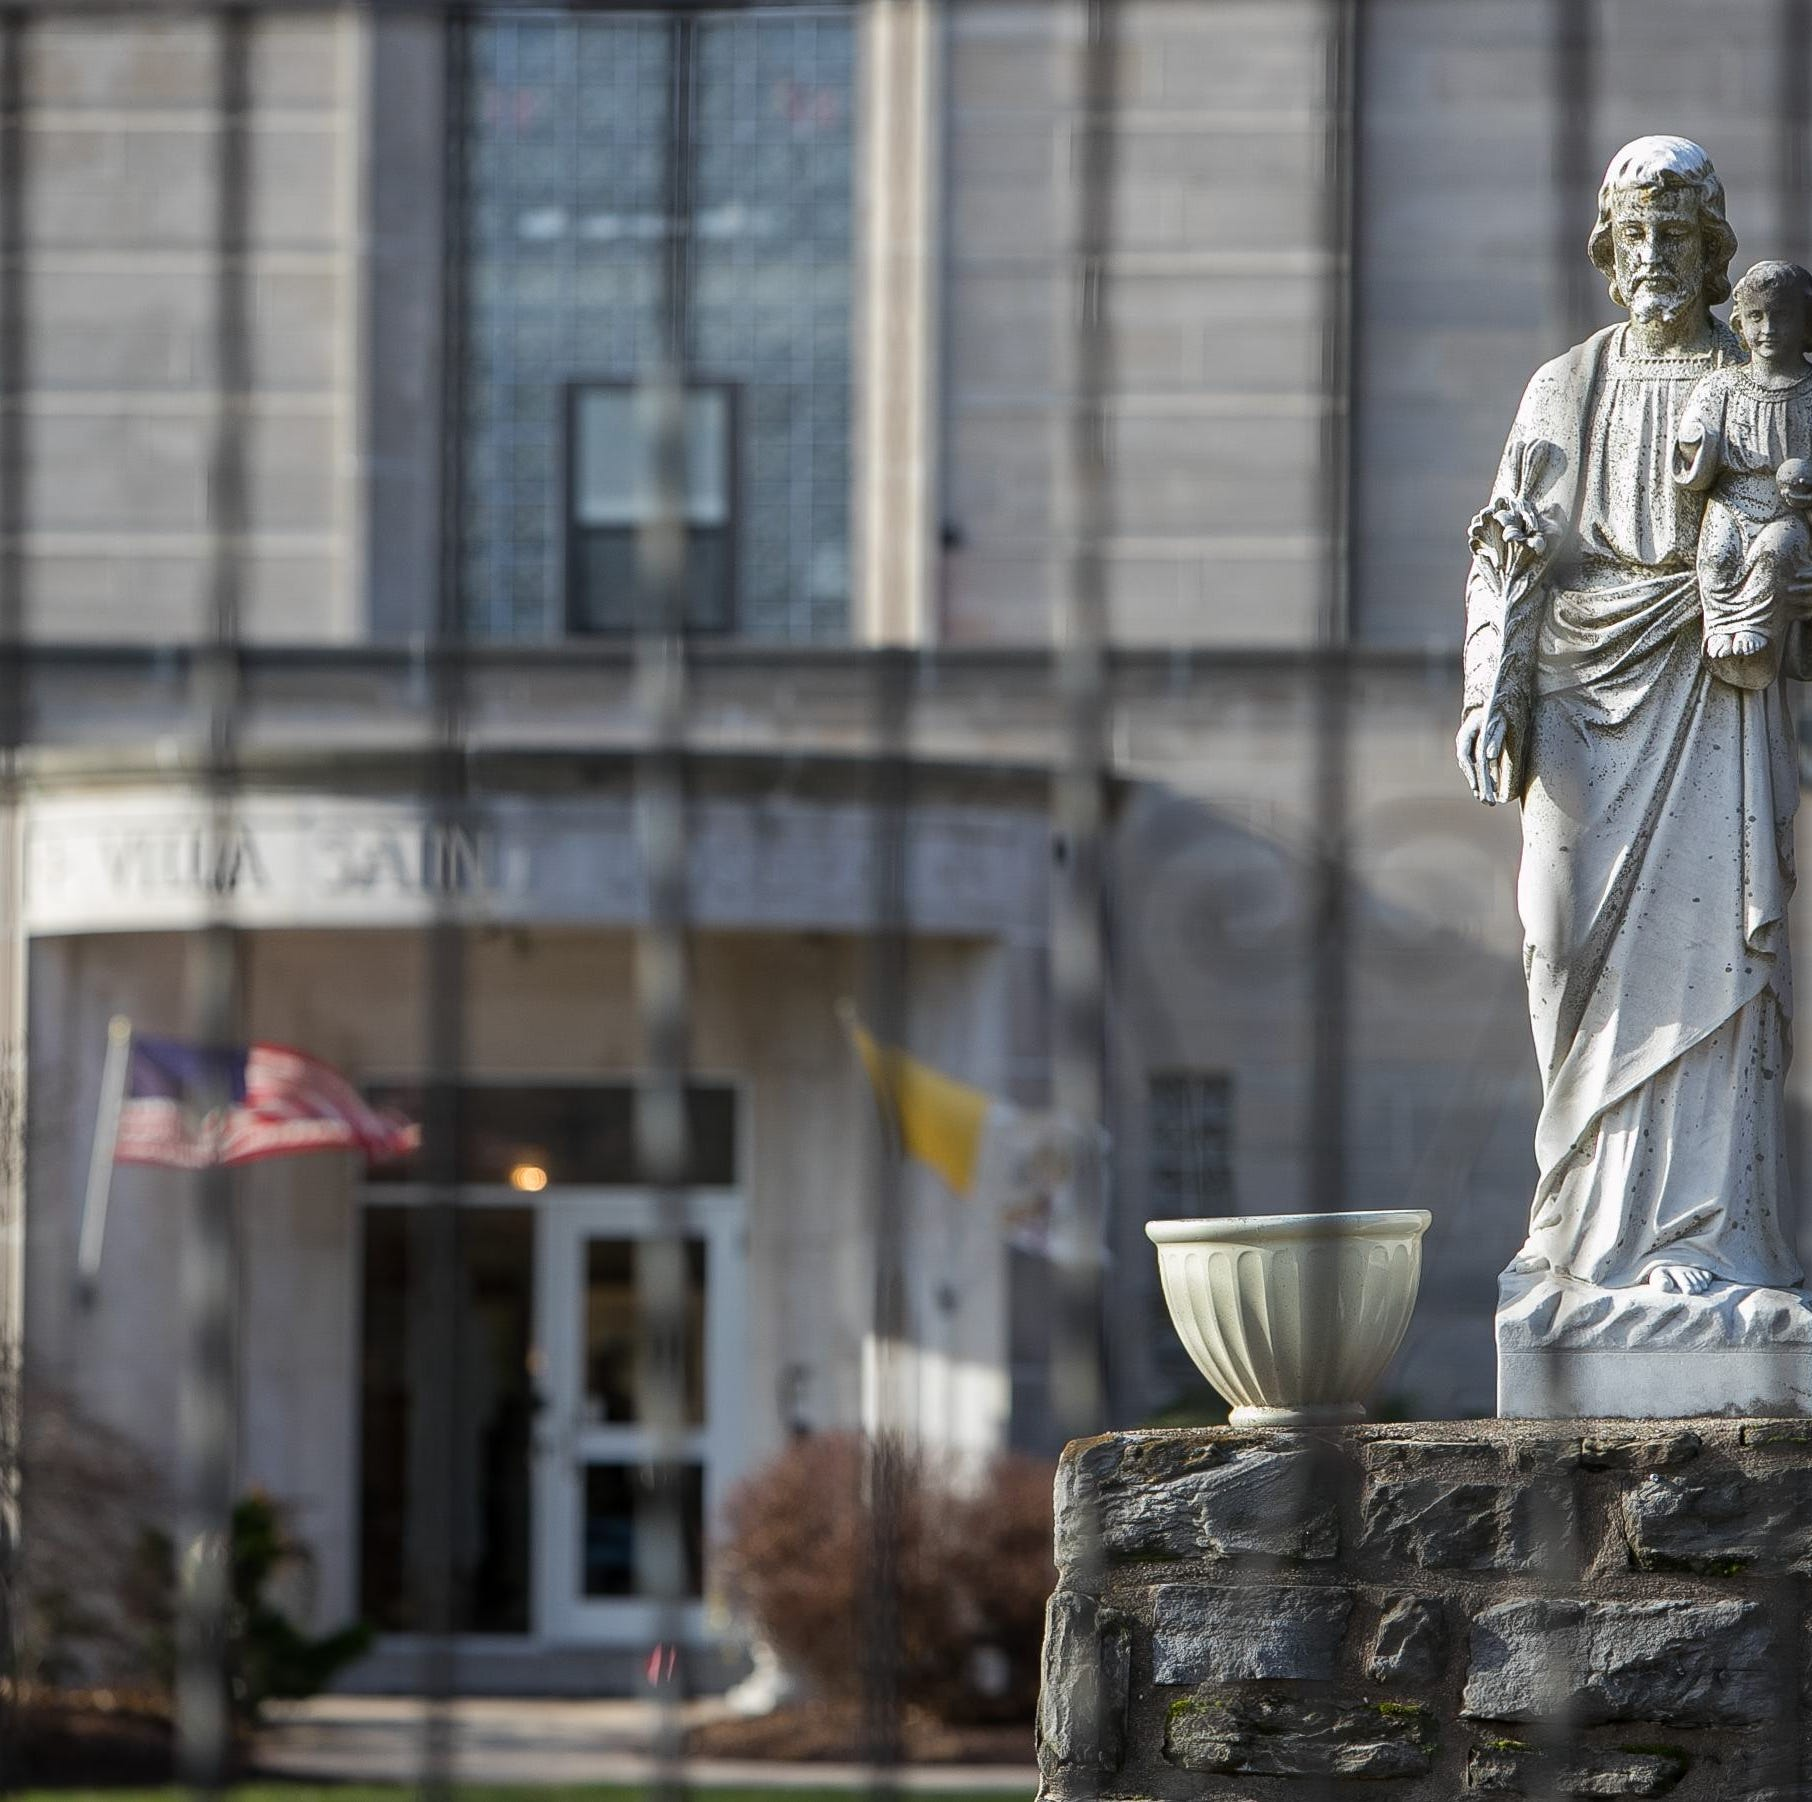 'Prayer and penance:' More than 78 predator priests in Pa. still paid by Catholic church